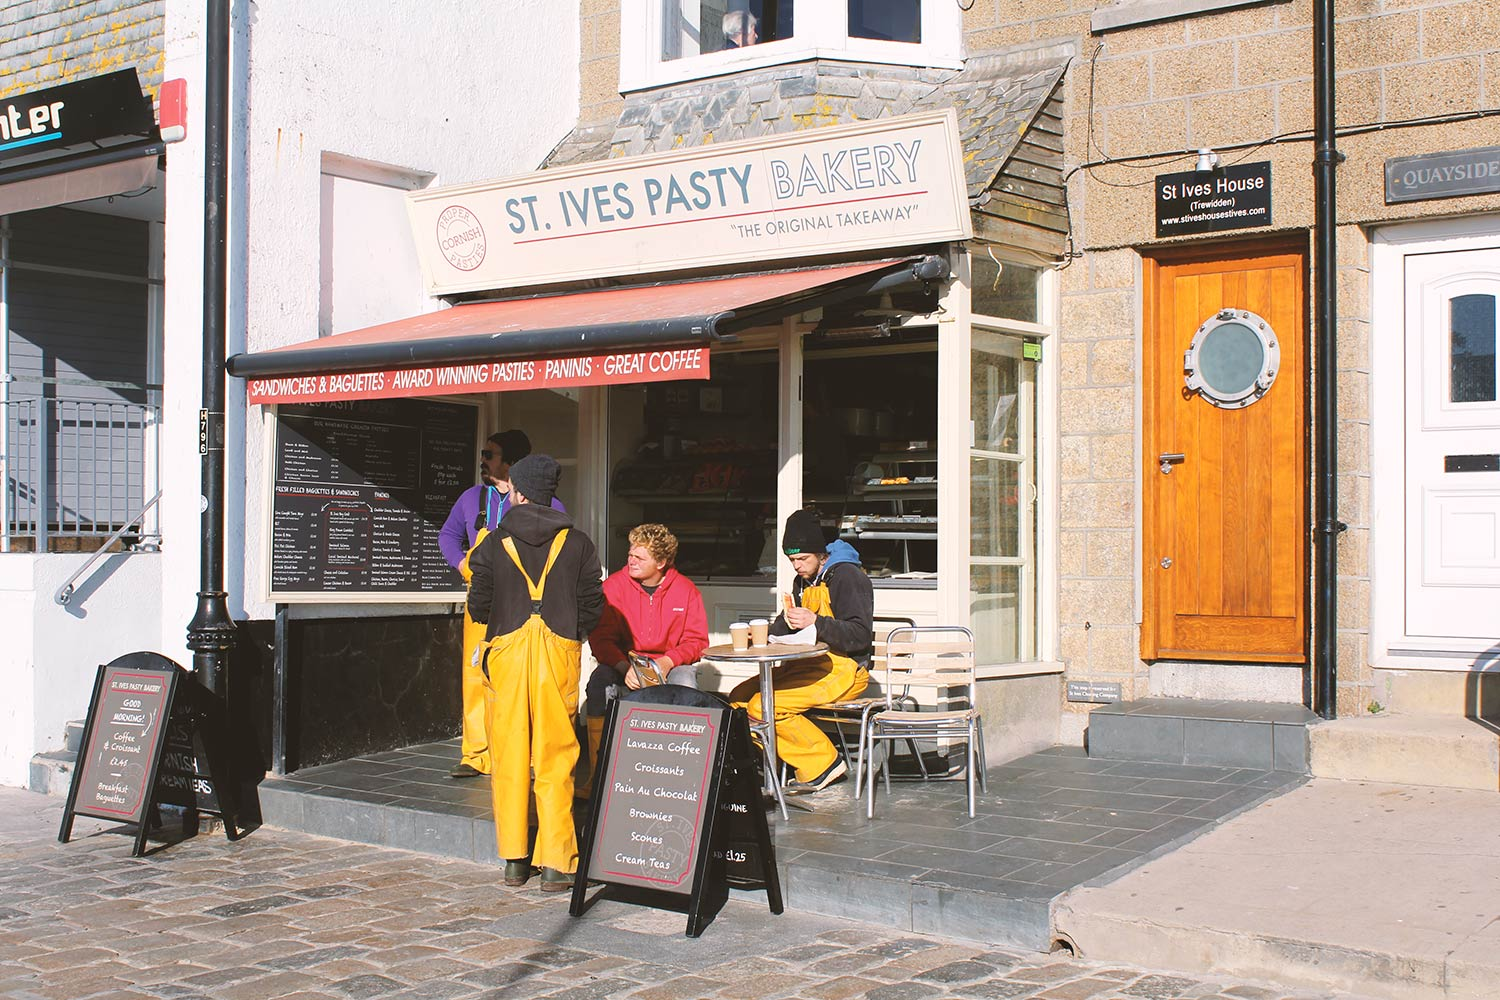 St Ives Pasty Bakery